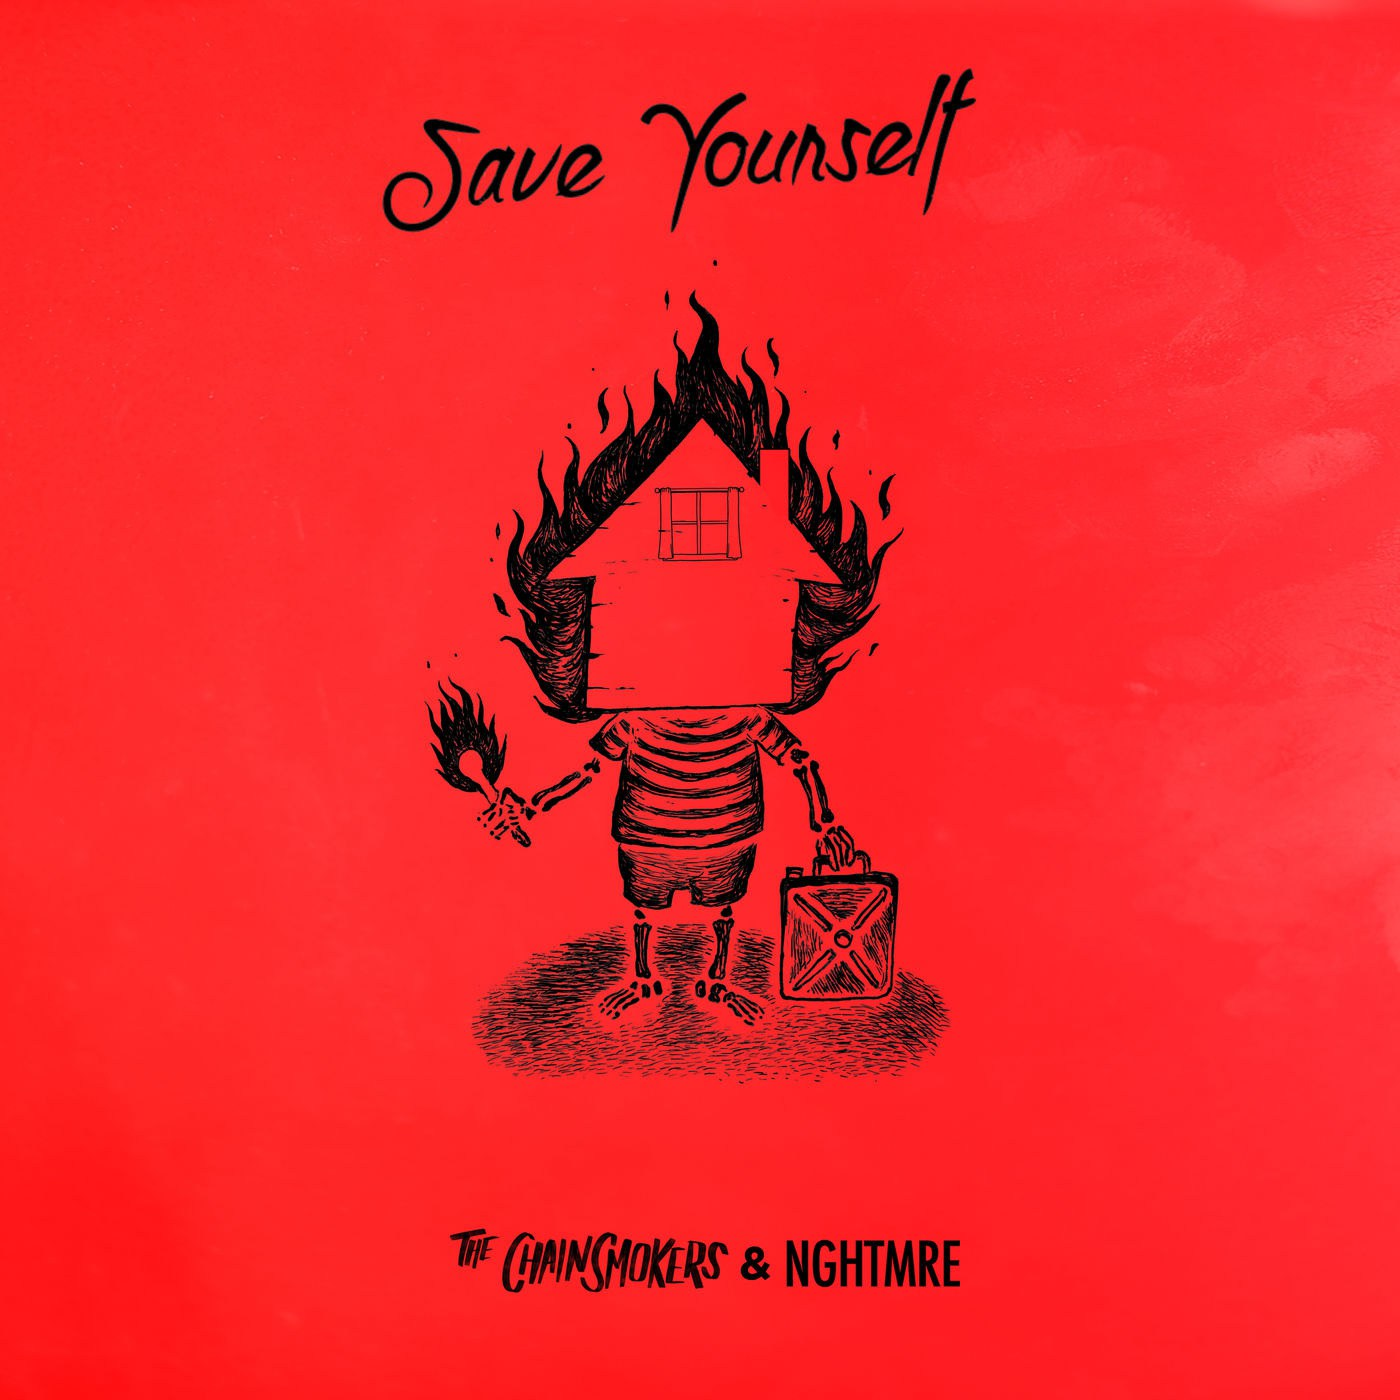 The Chainsmokers – Save Yourself Ft. NGHTMRE